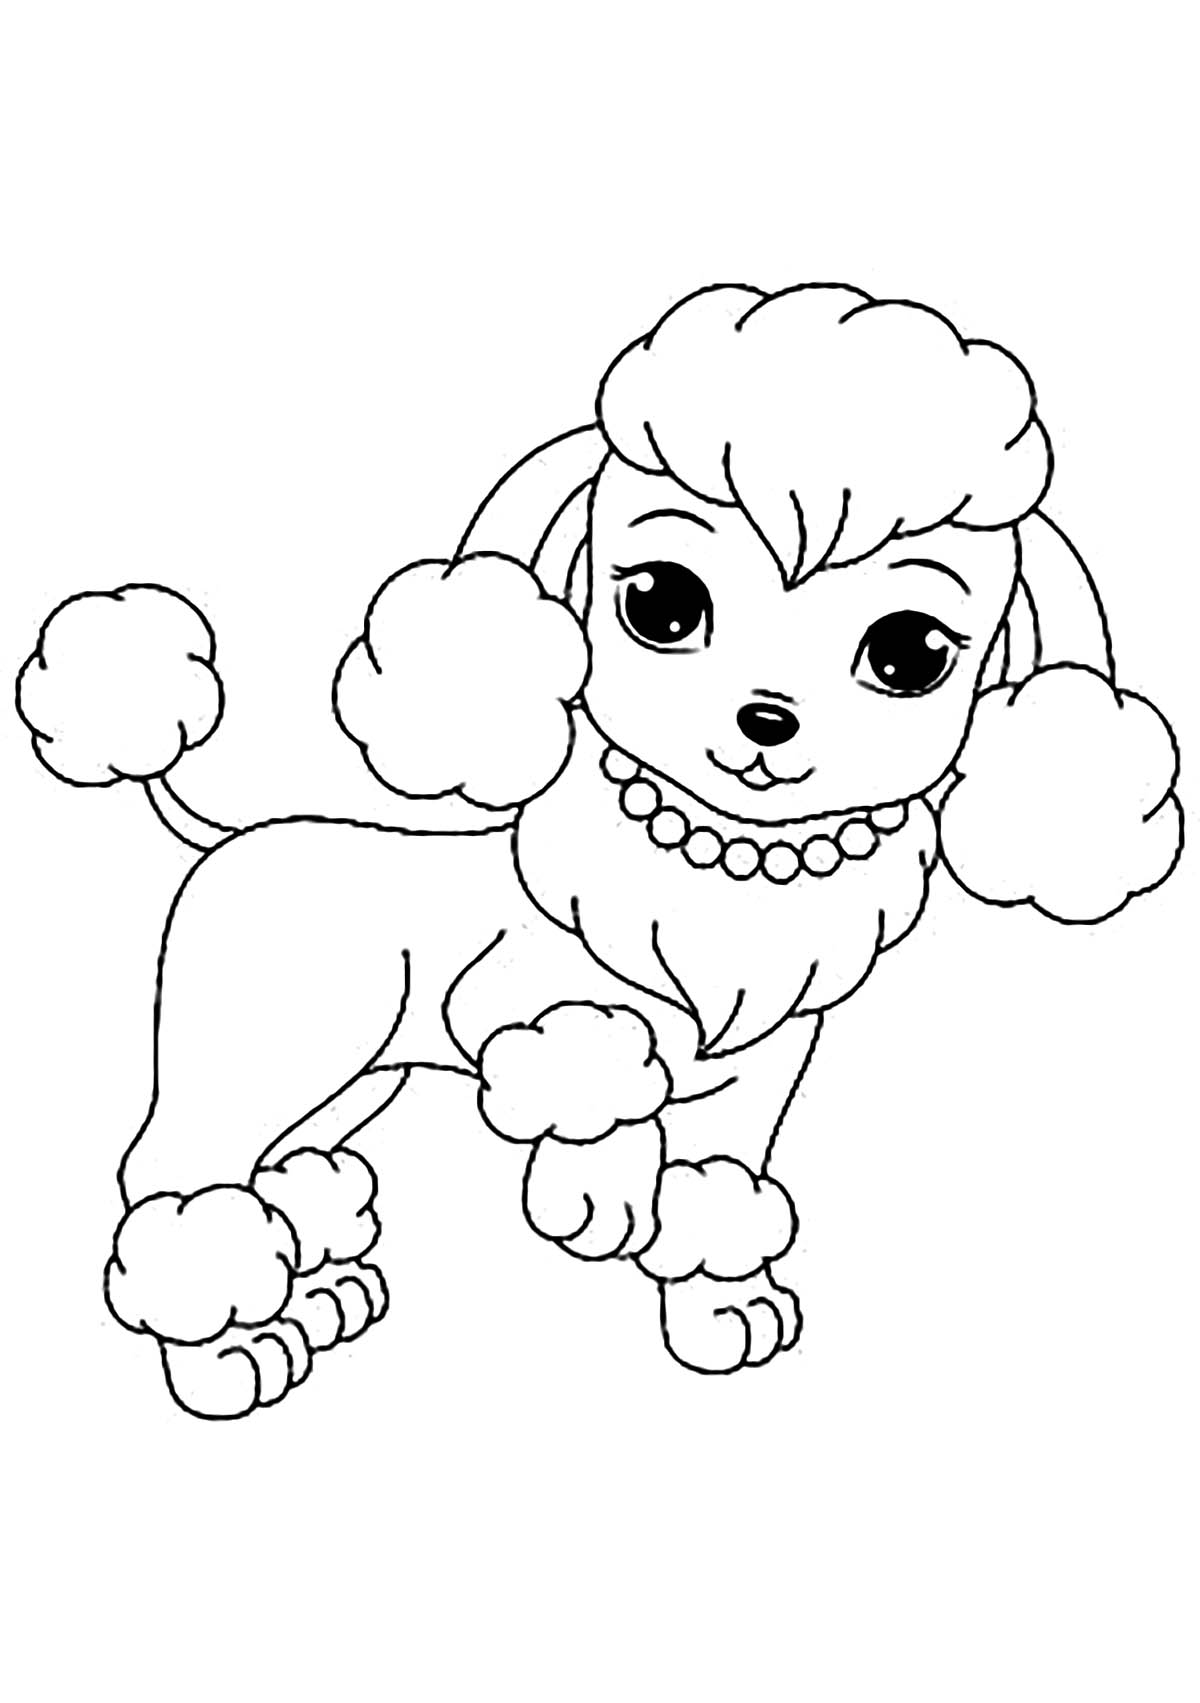 dog coloring pages for toddlers dog coloring pages for kids print them online for free for dog coloring toddlers pages